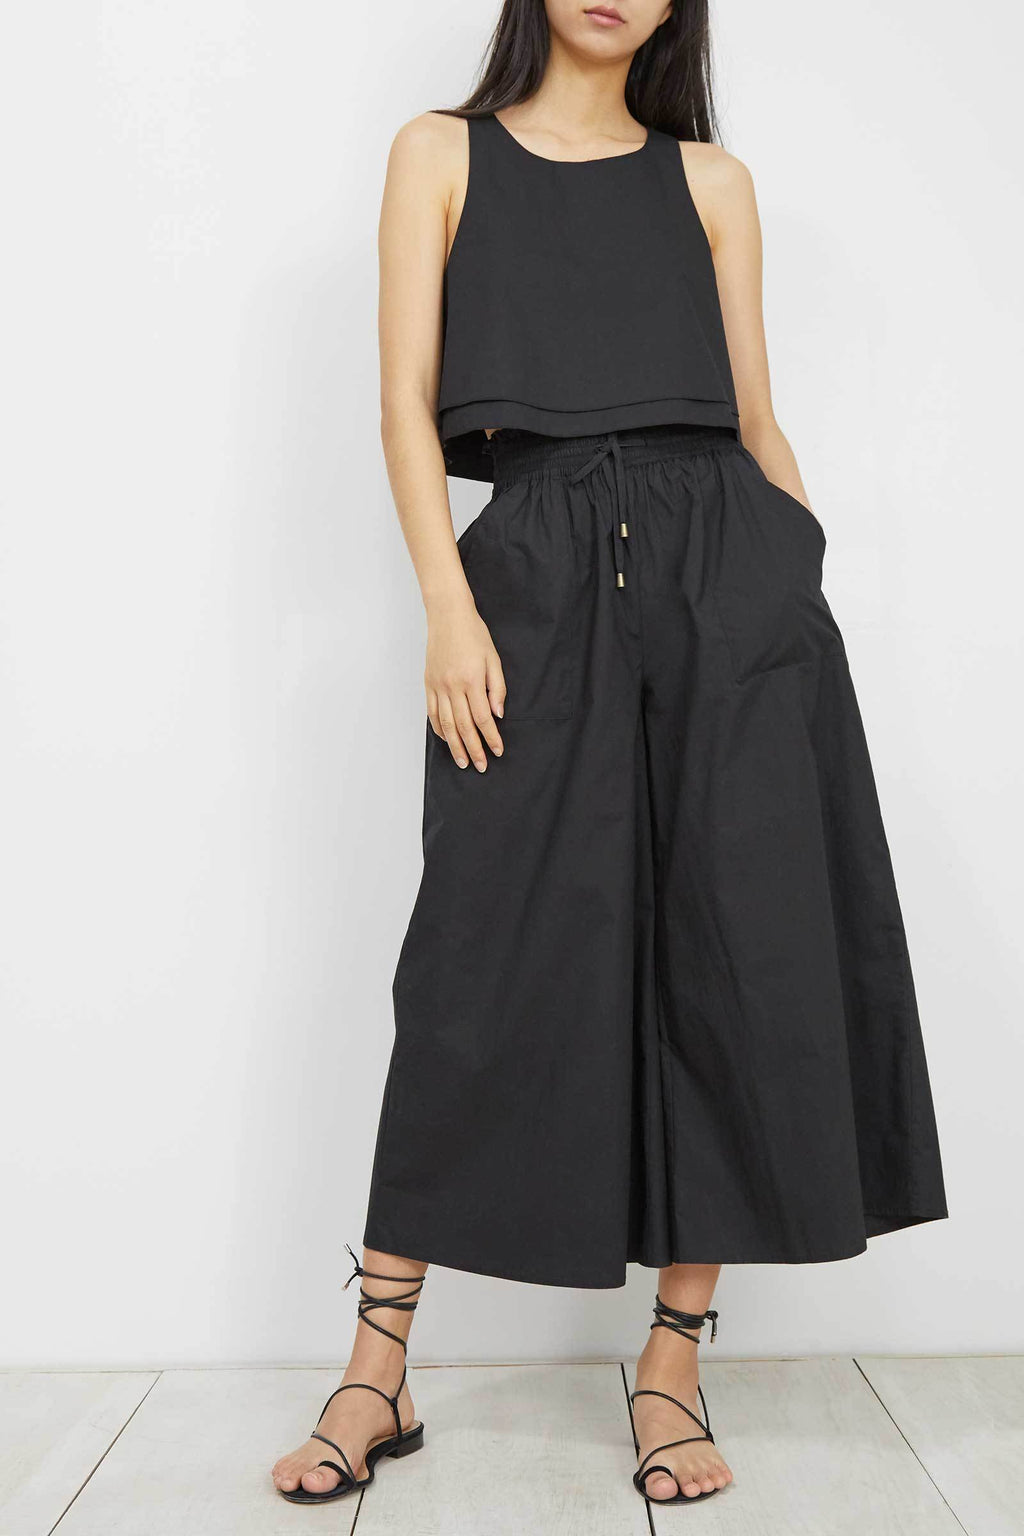 Apiece Apart Agnes Crop Top in Black